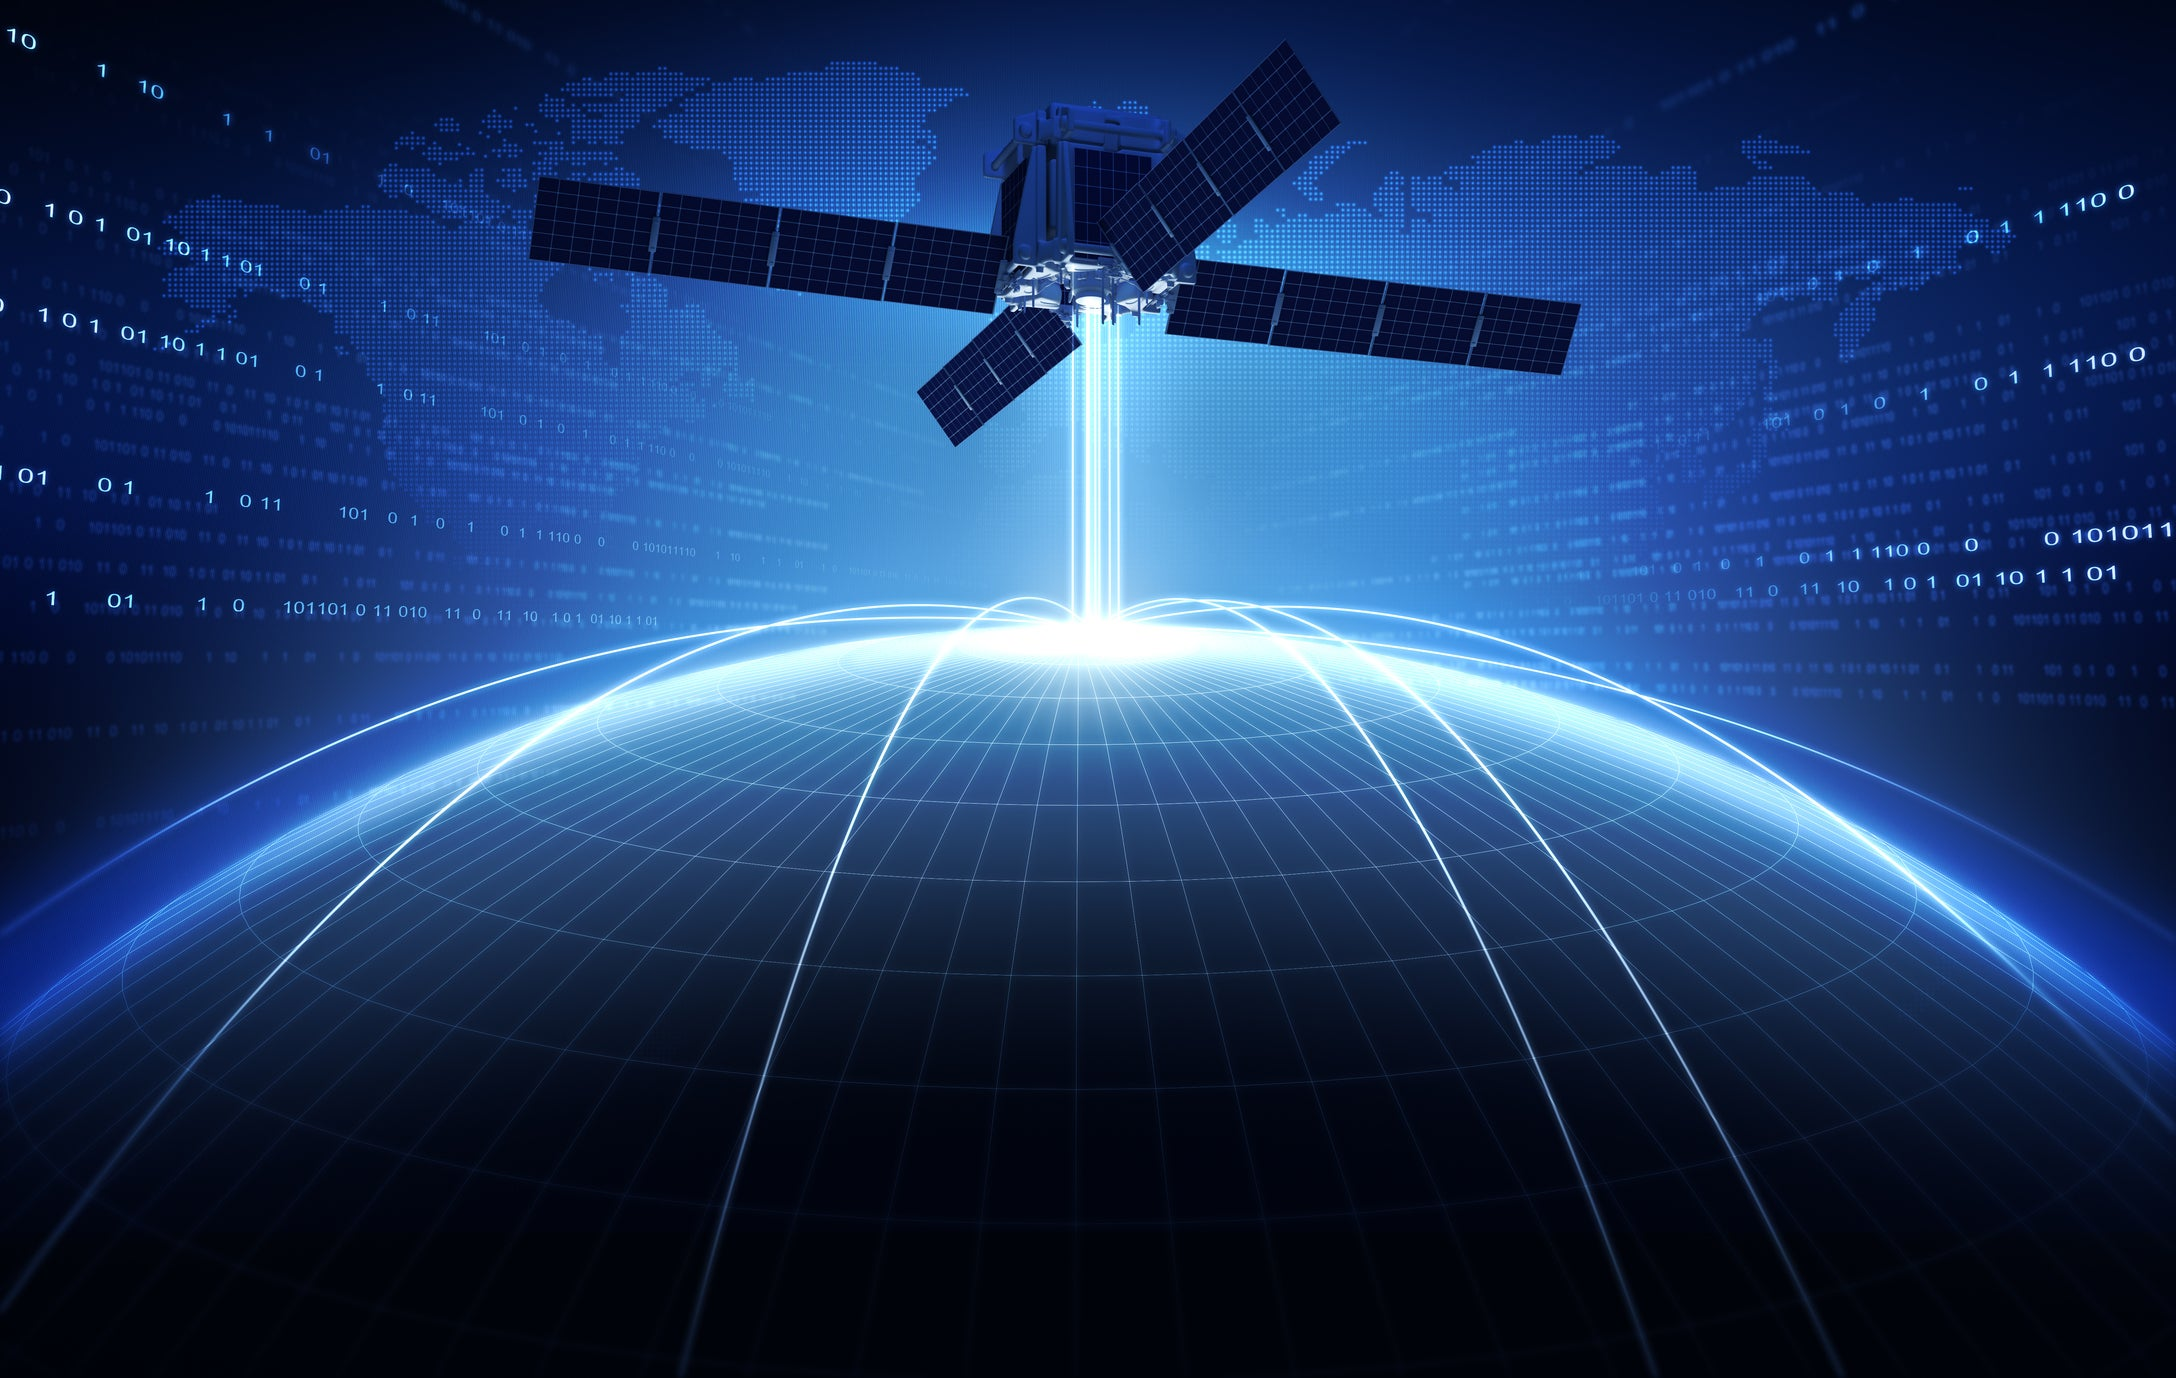 Will SpaceX's Starlink Kill the Cable Industry?